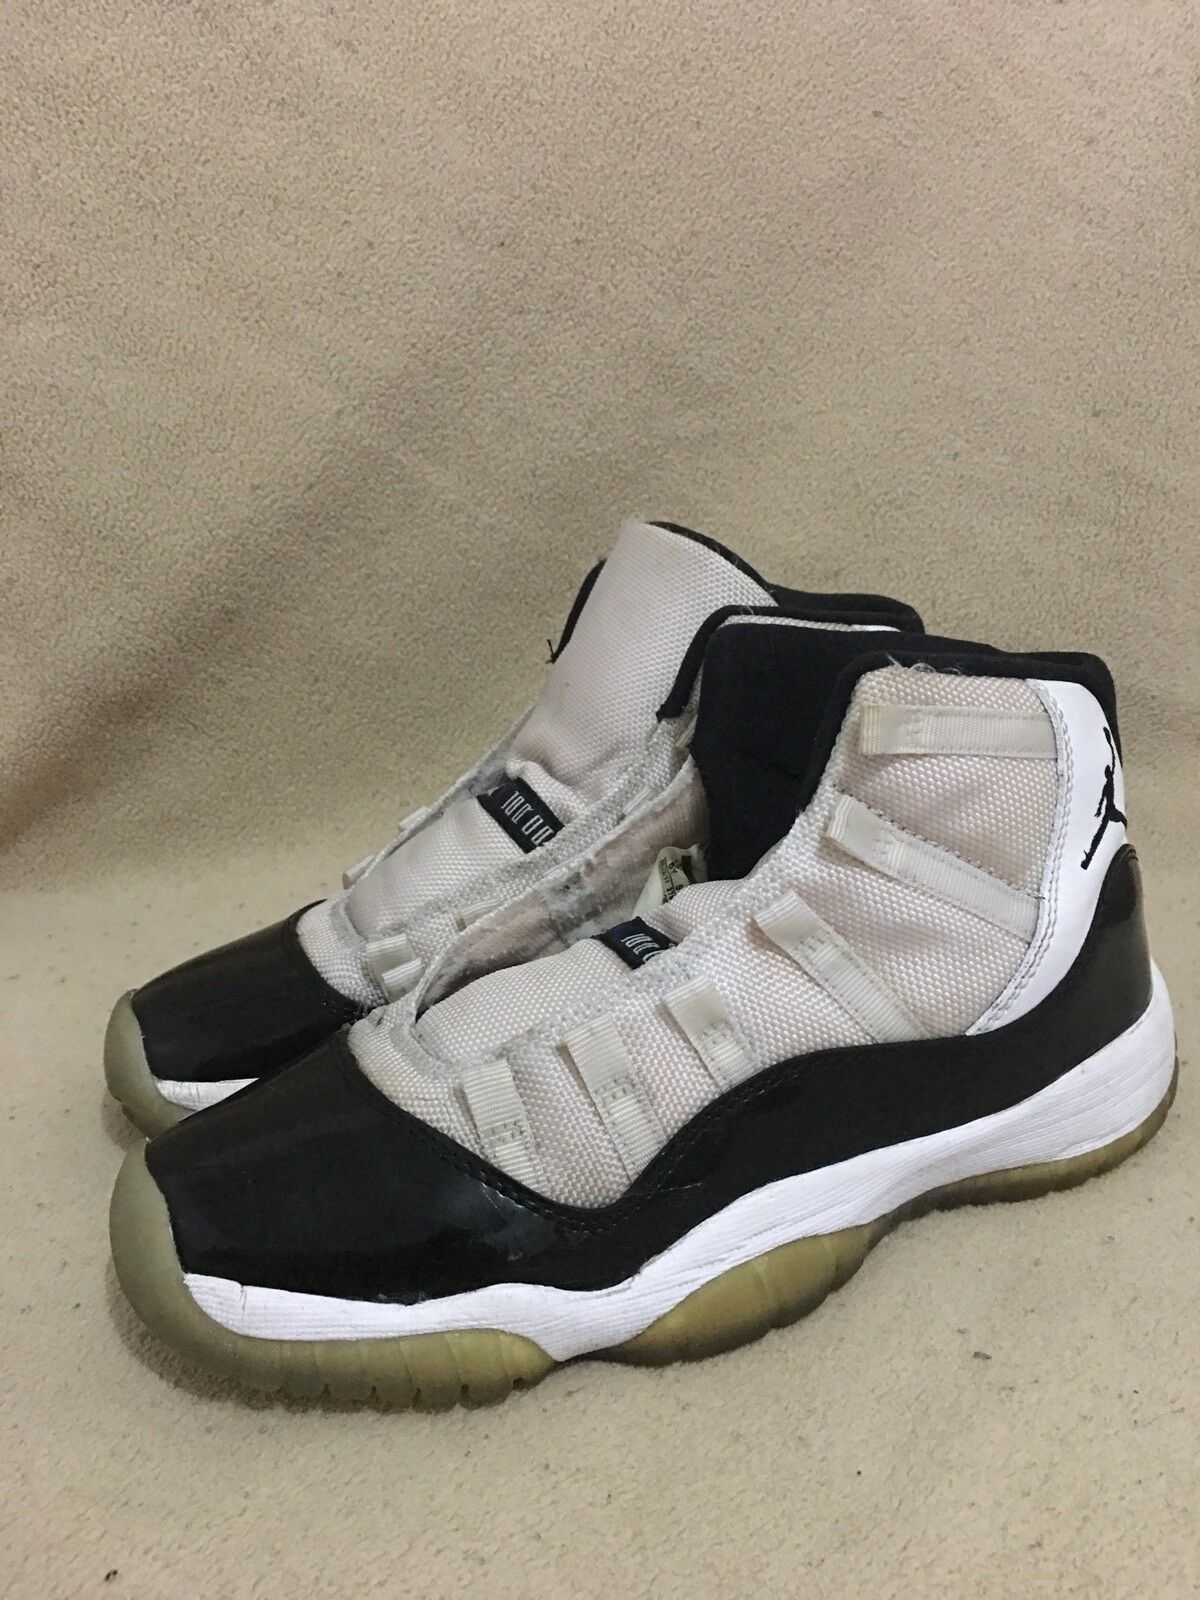 nike air jordan 11 space retro